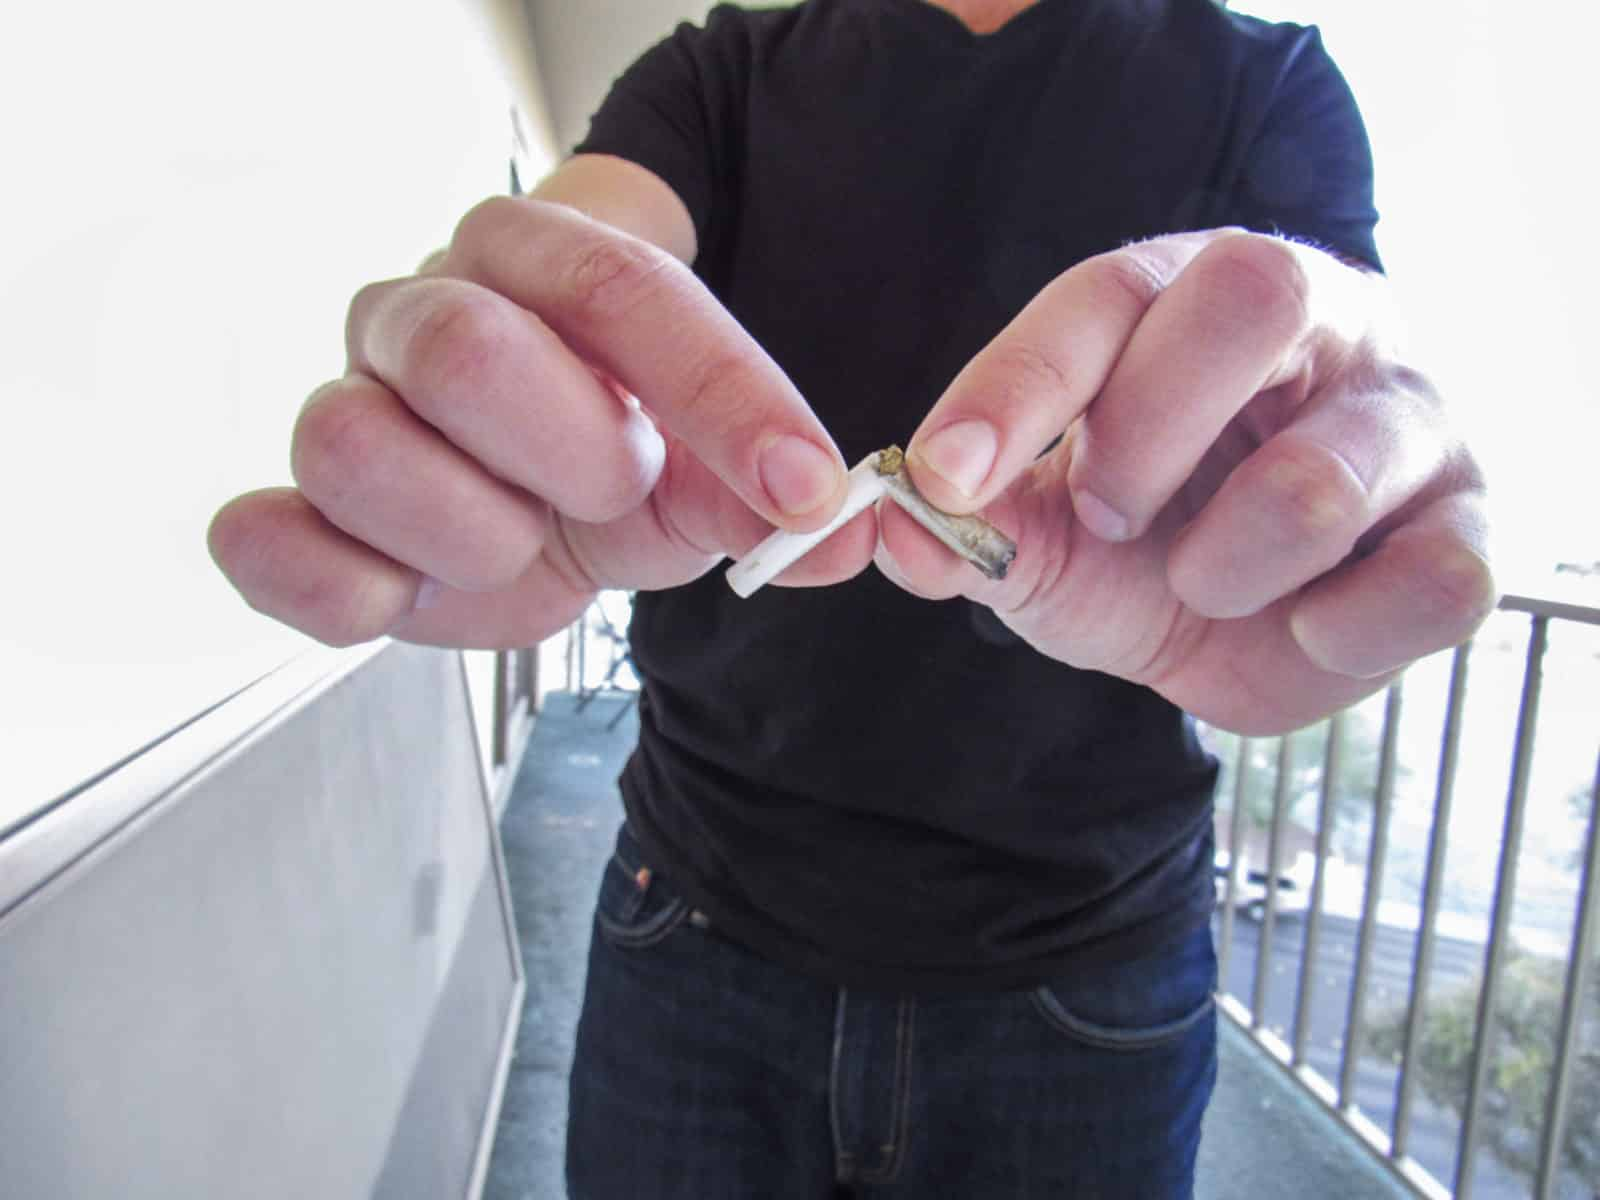 Man holding broken joint